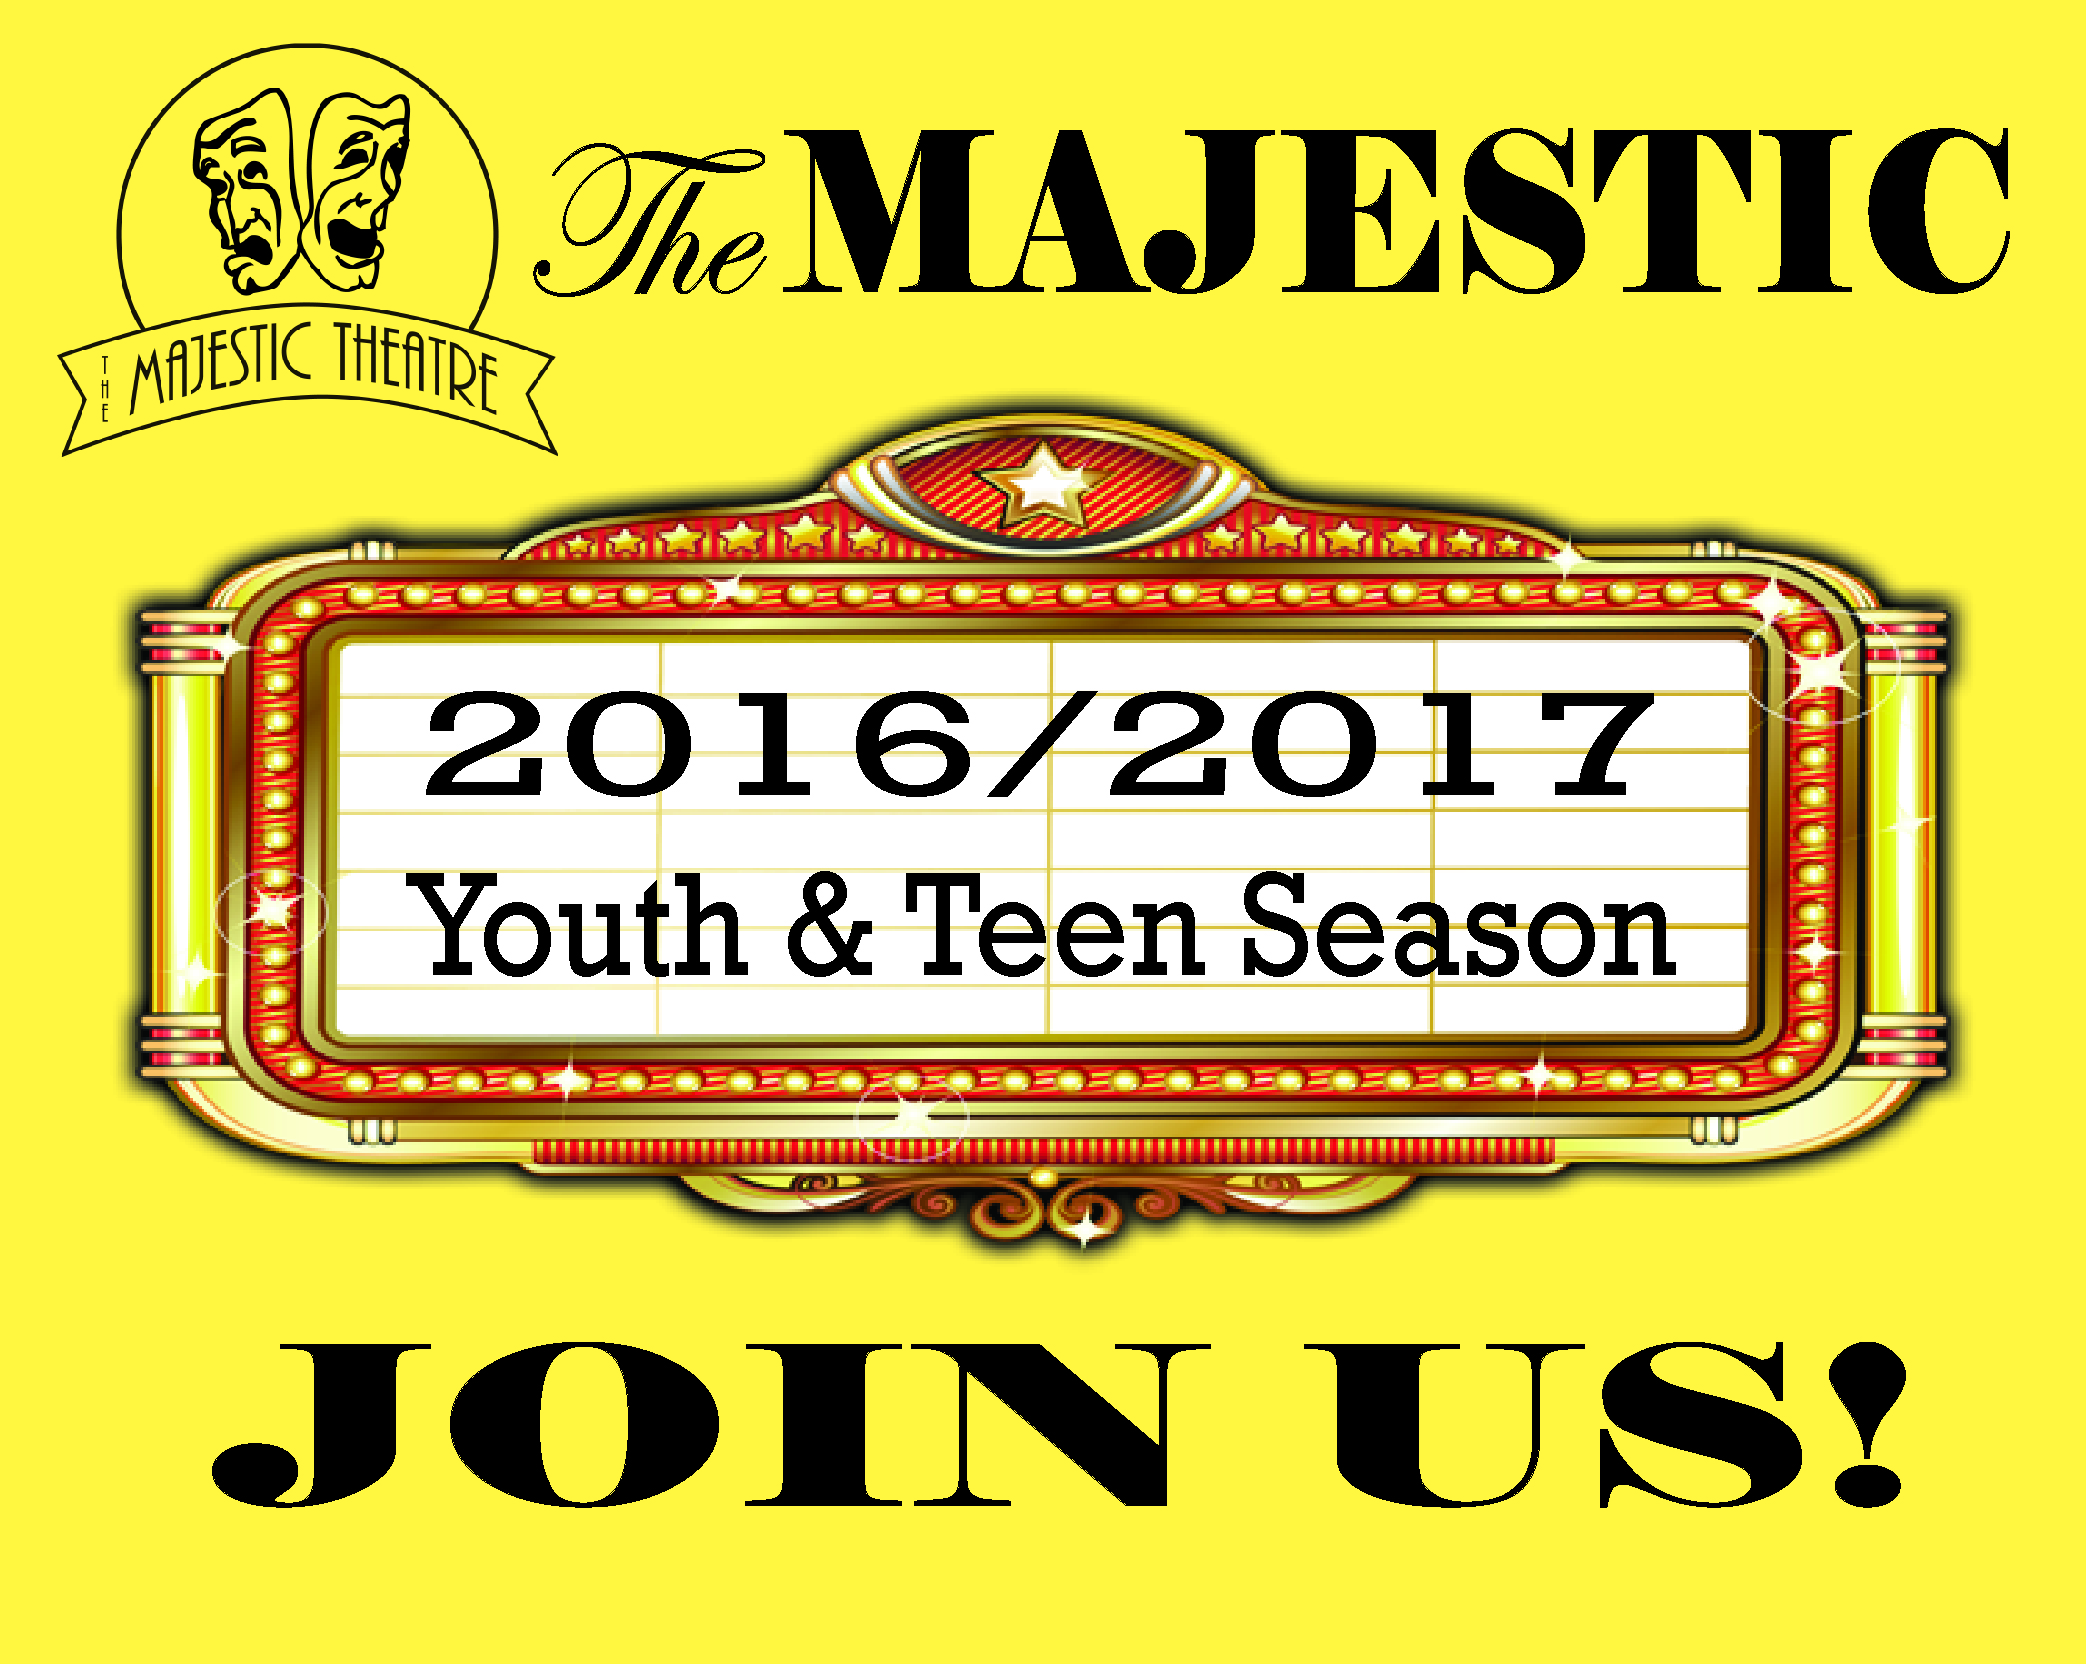 SEASON join us